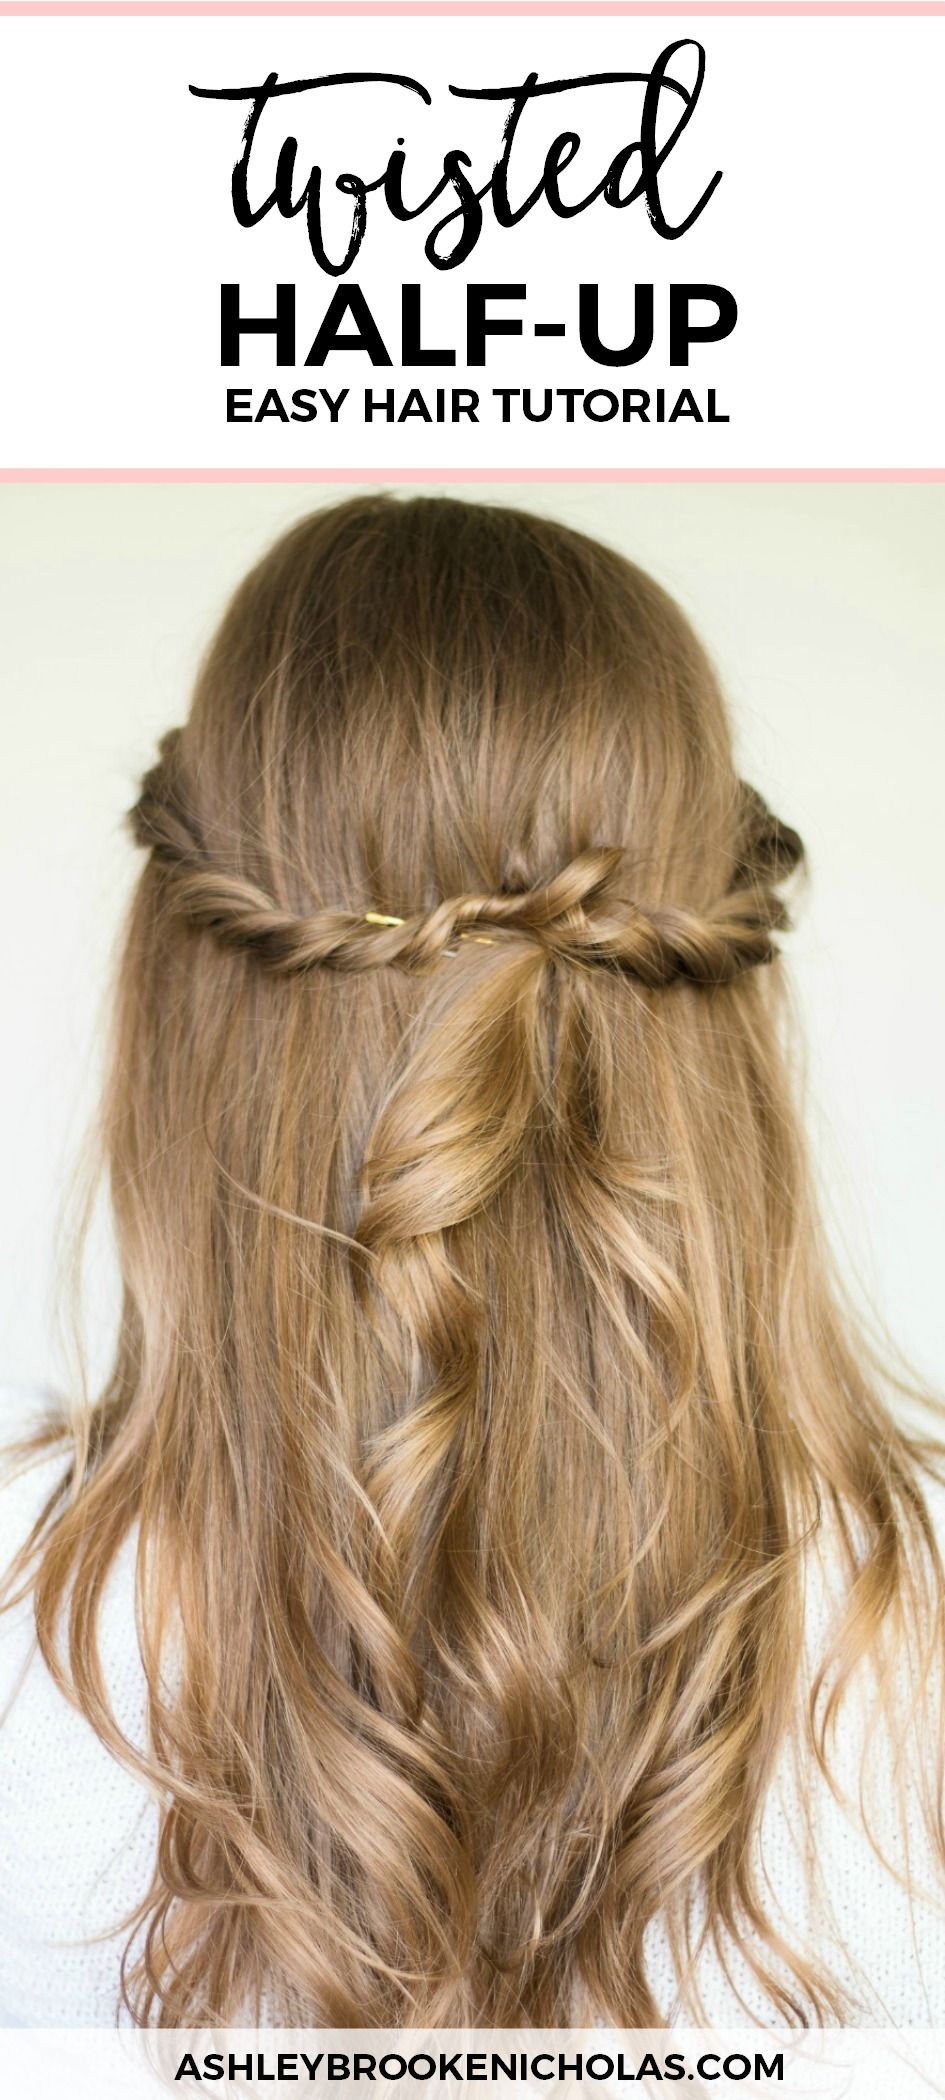 Quick & Easy Hairstyle Tutorials Best Shampoo & Conditioner for